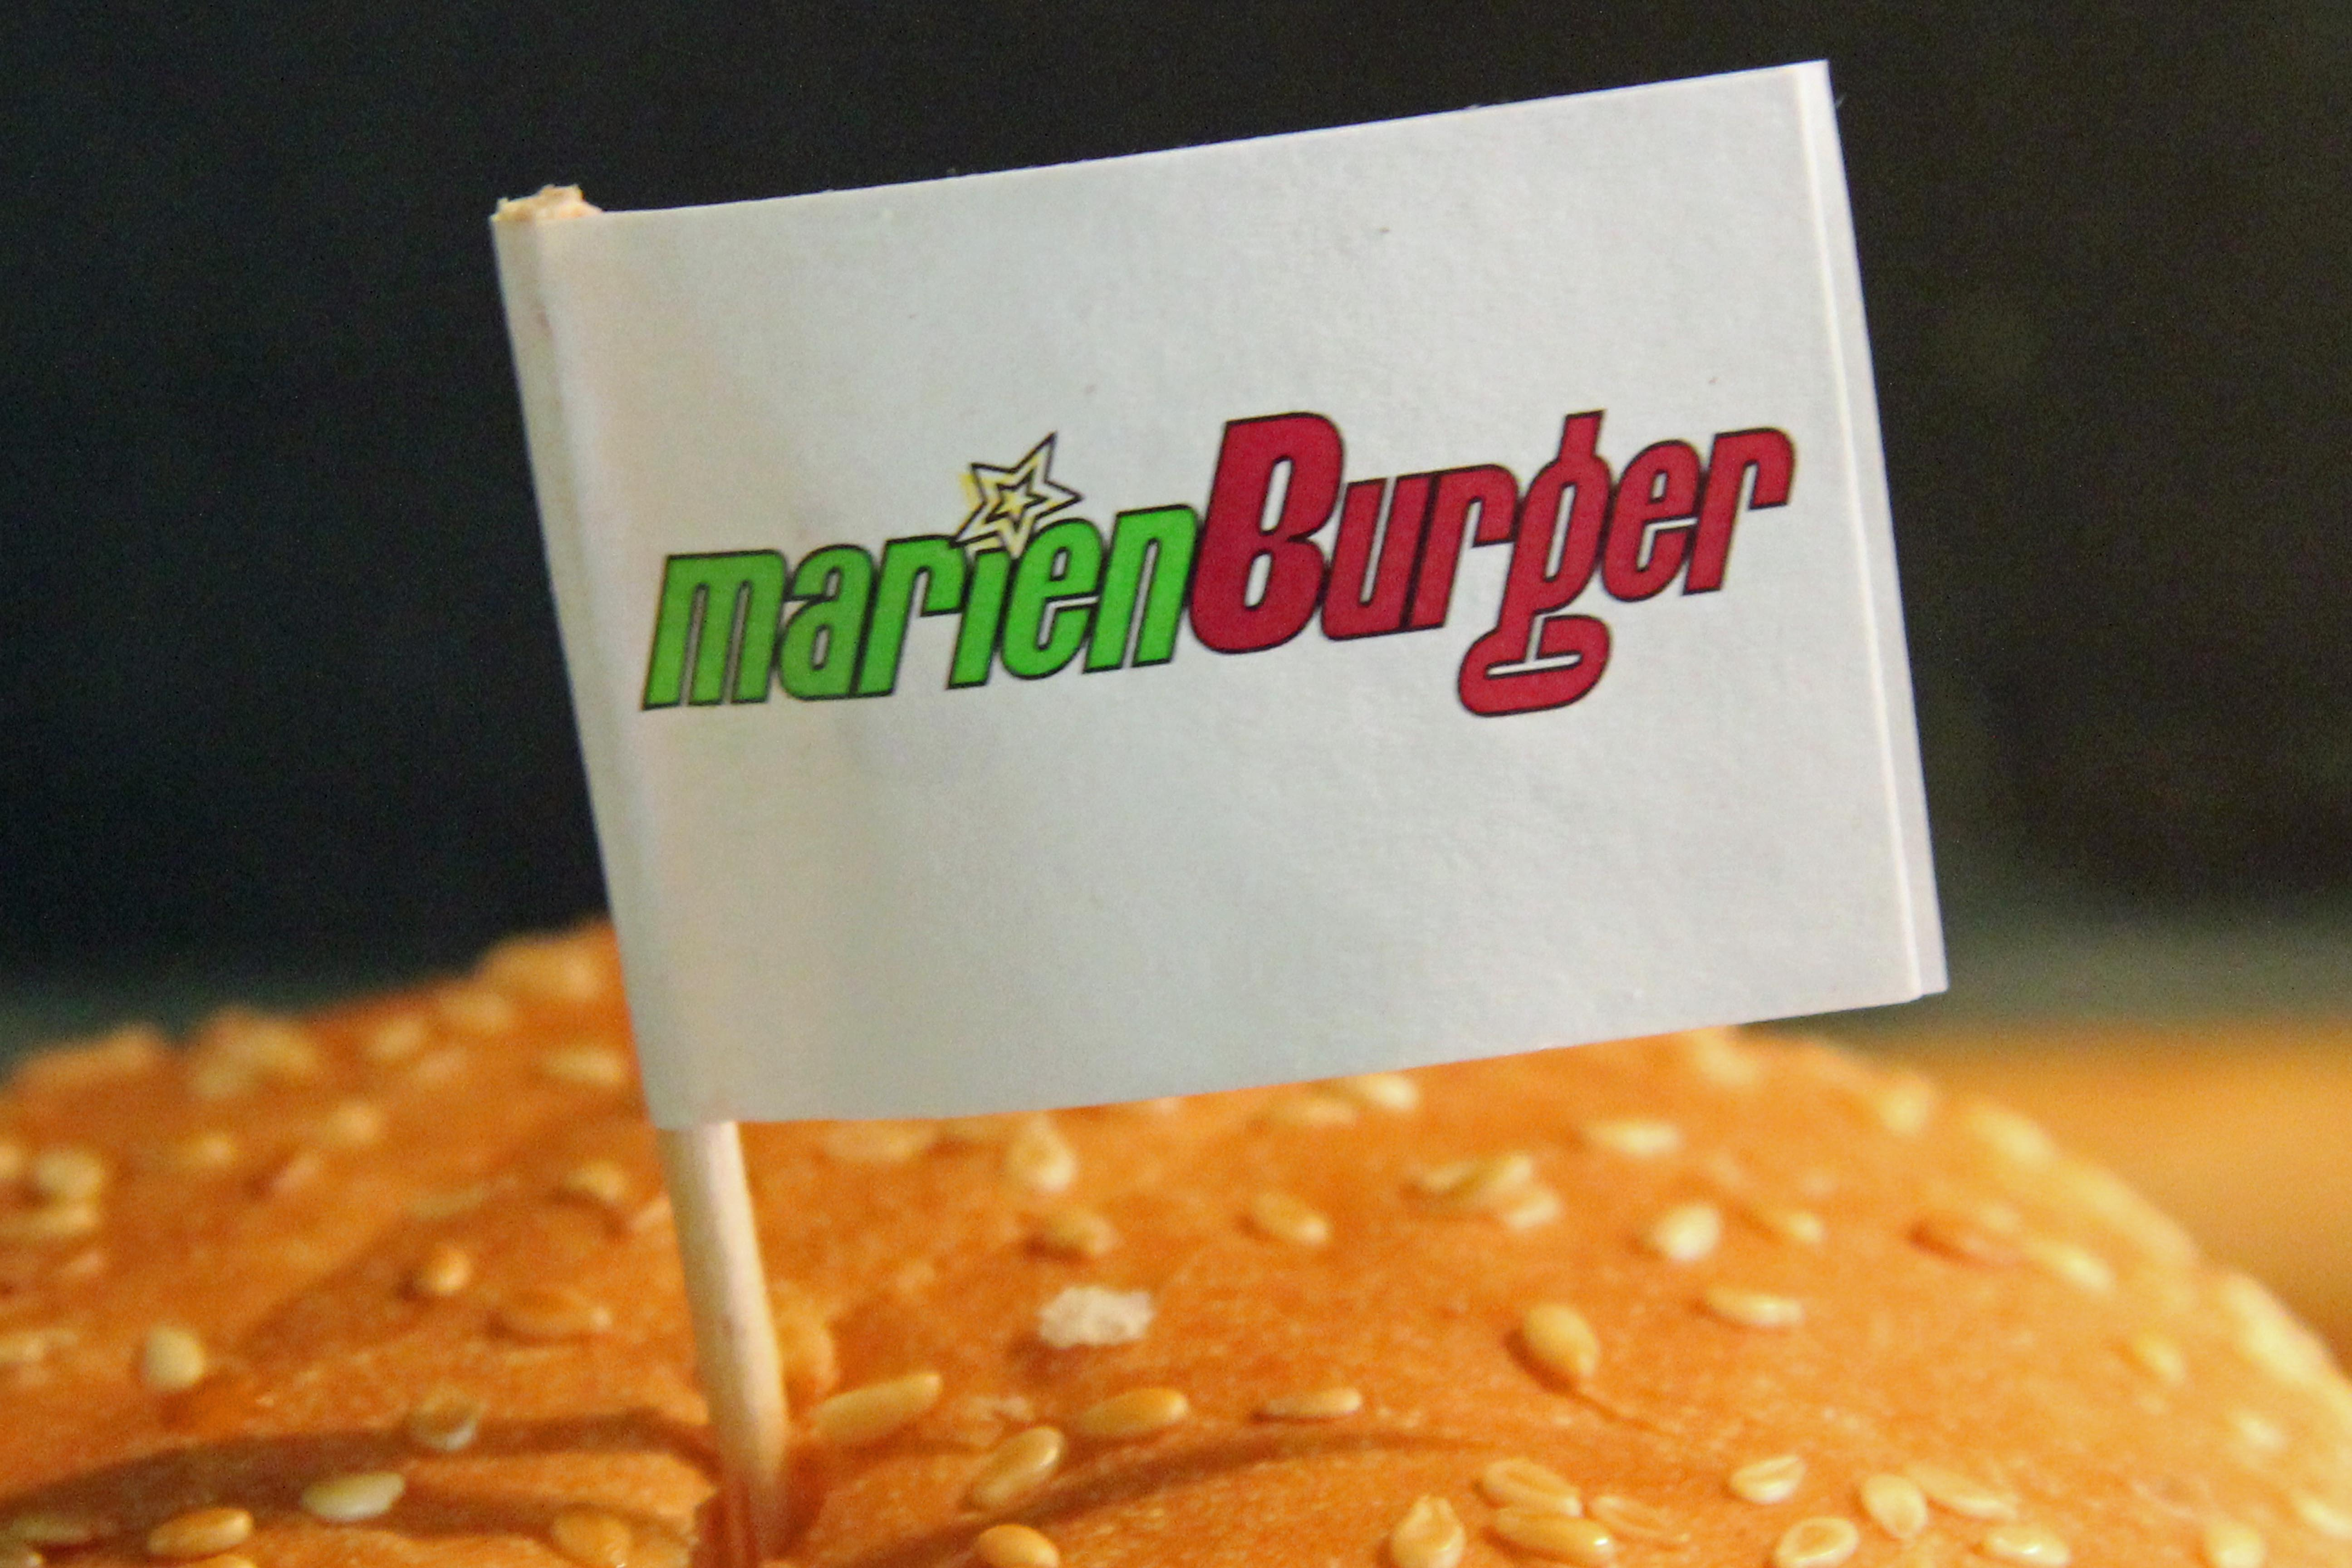 The Marienburger logo on a flag stuck in the burger bun in Berlin